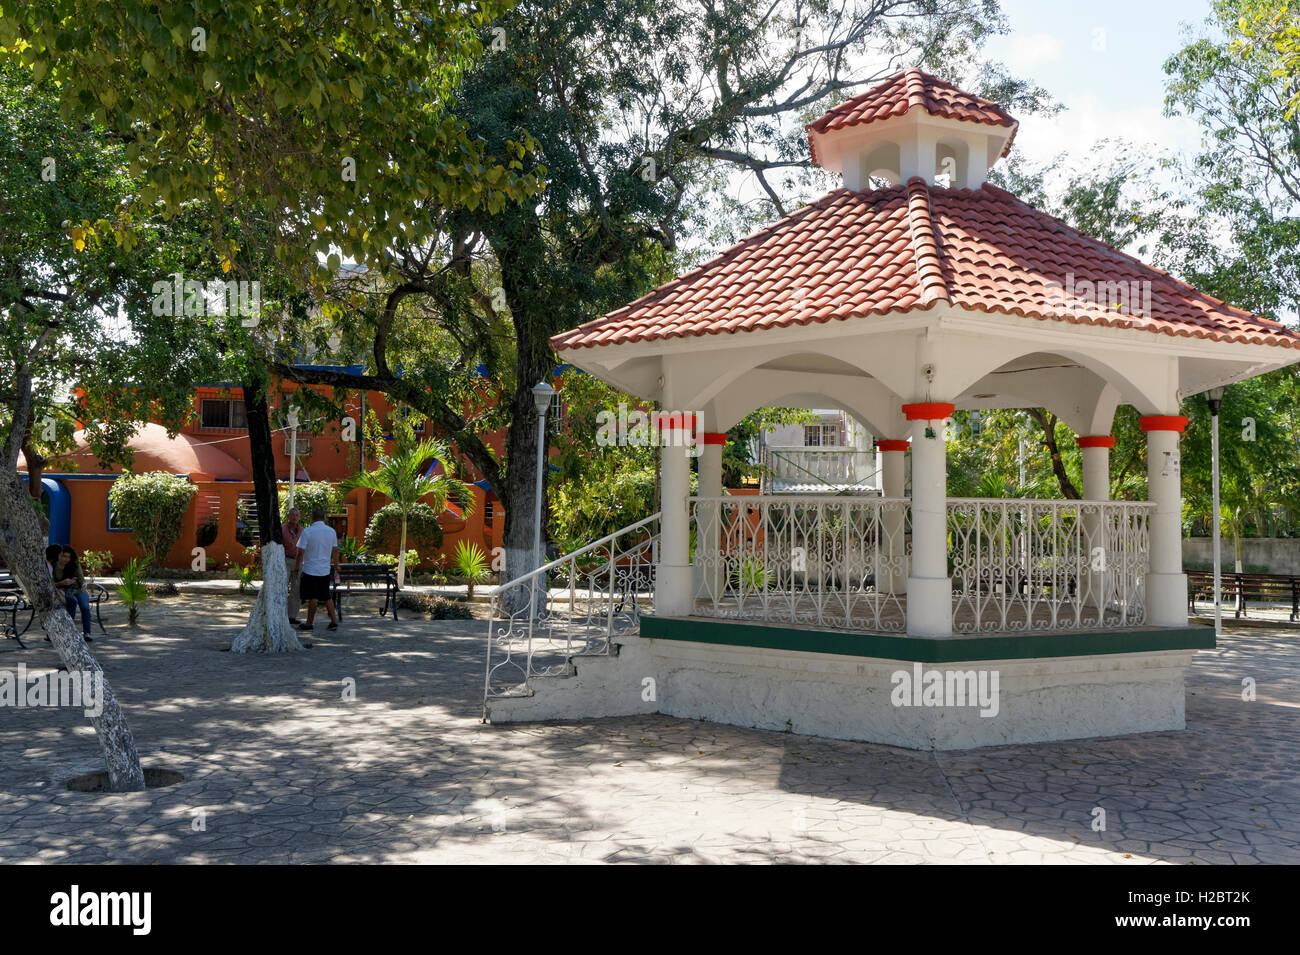 Bandstand in Parque Las Palapas in downtown Cancun, Quintana Roo, Mexico - Stock Image